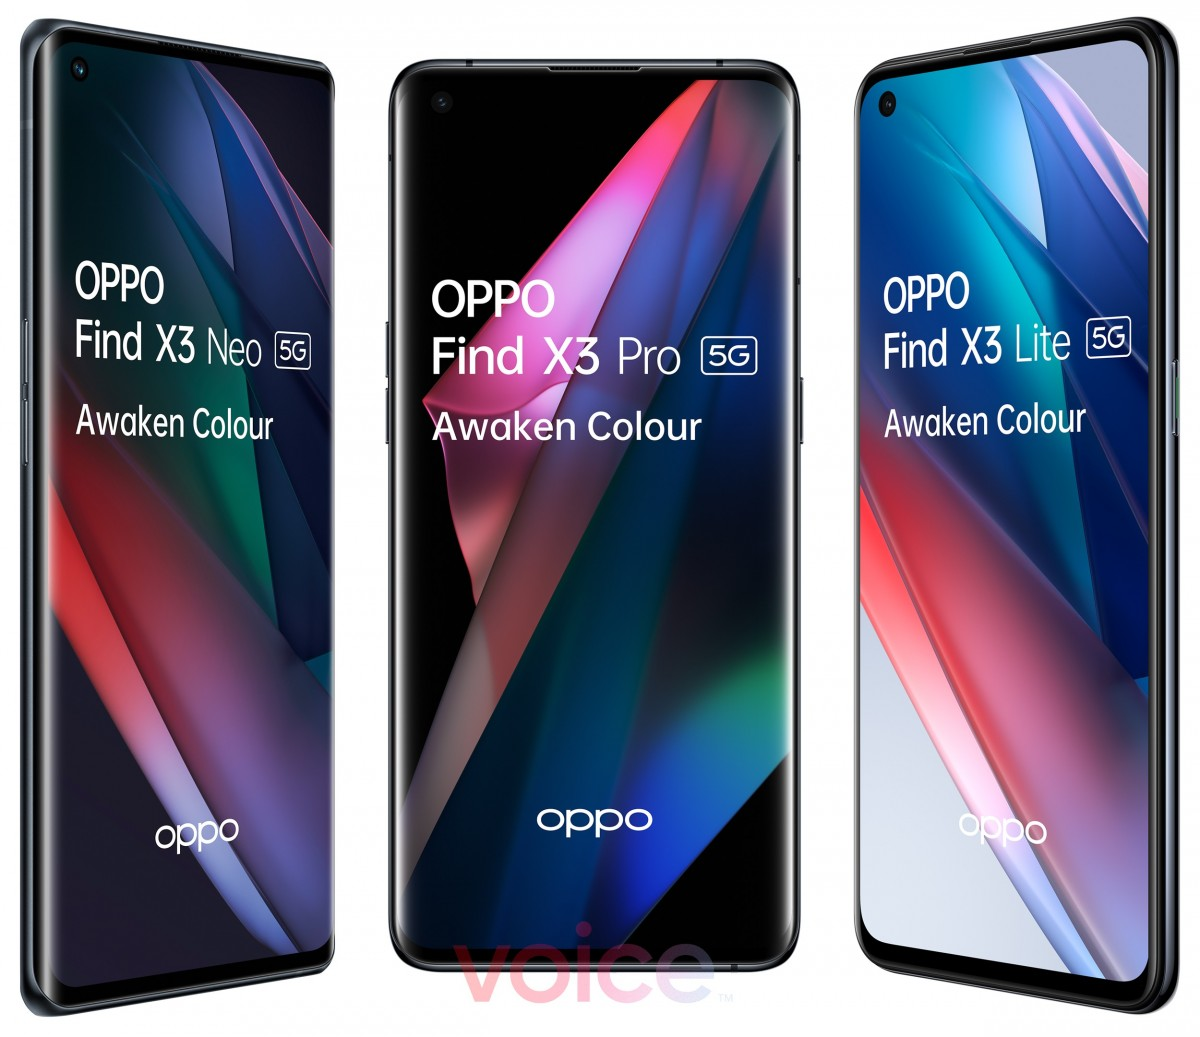 Oppo Find X3 Pro stars in official-looking images